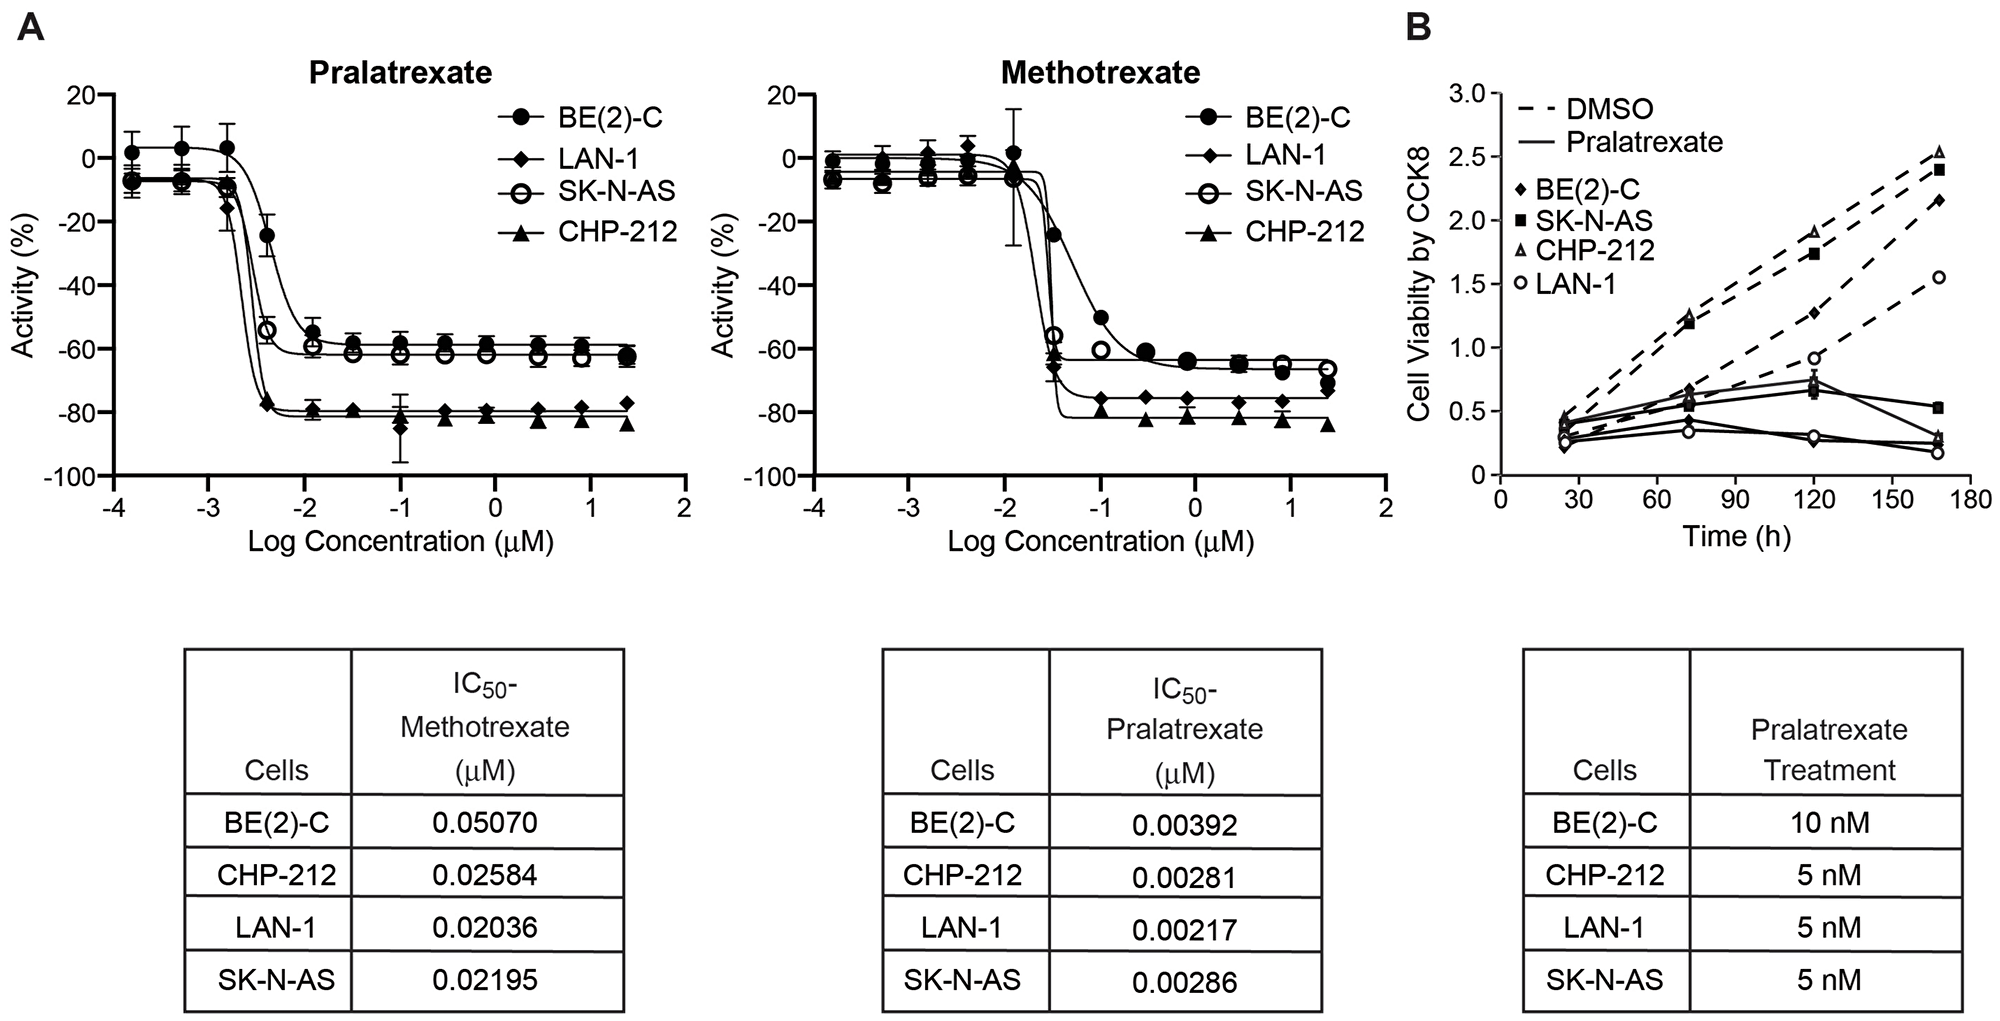 IC50 of human neuroblastoma cell lines BE(2)-C, CHP-212, and LAN-1 (MYCN-amplified) and SK-N-AS (non-MYCN-amplified).